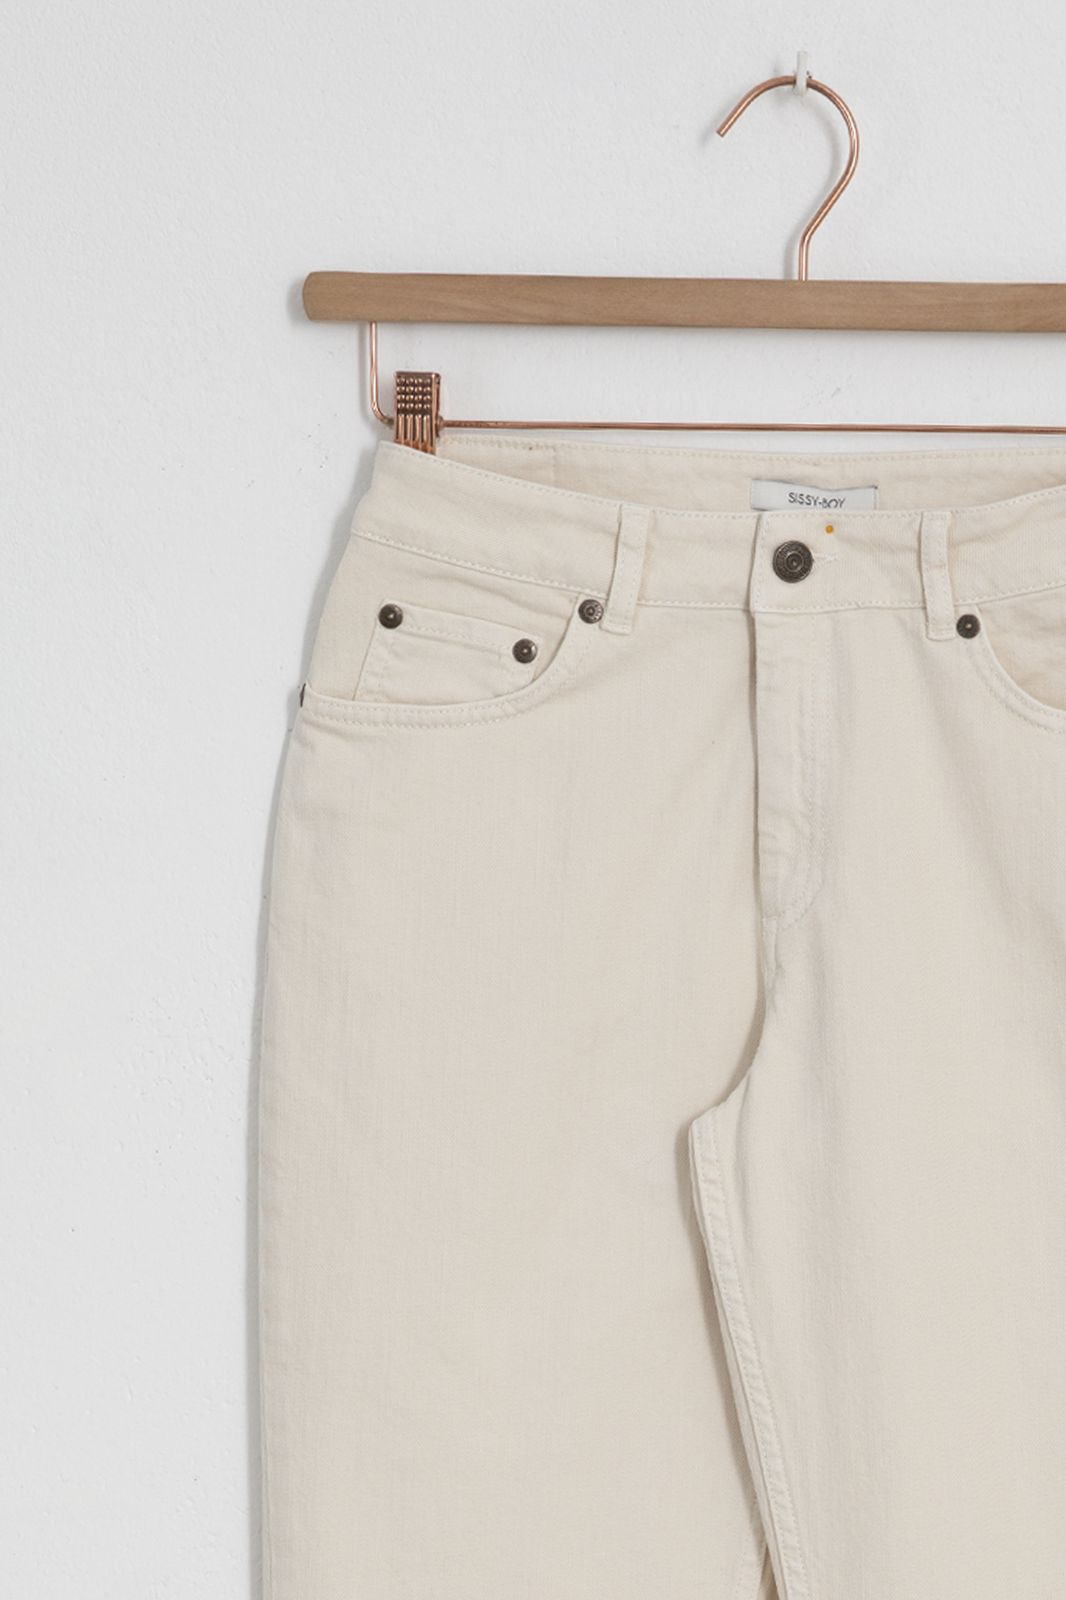 Offwhite 5-pocket jeans